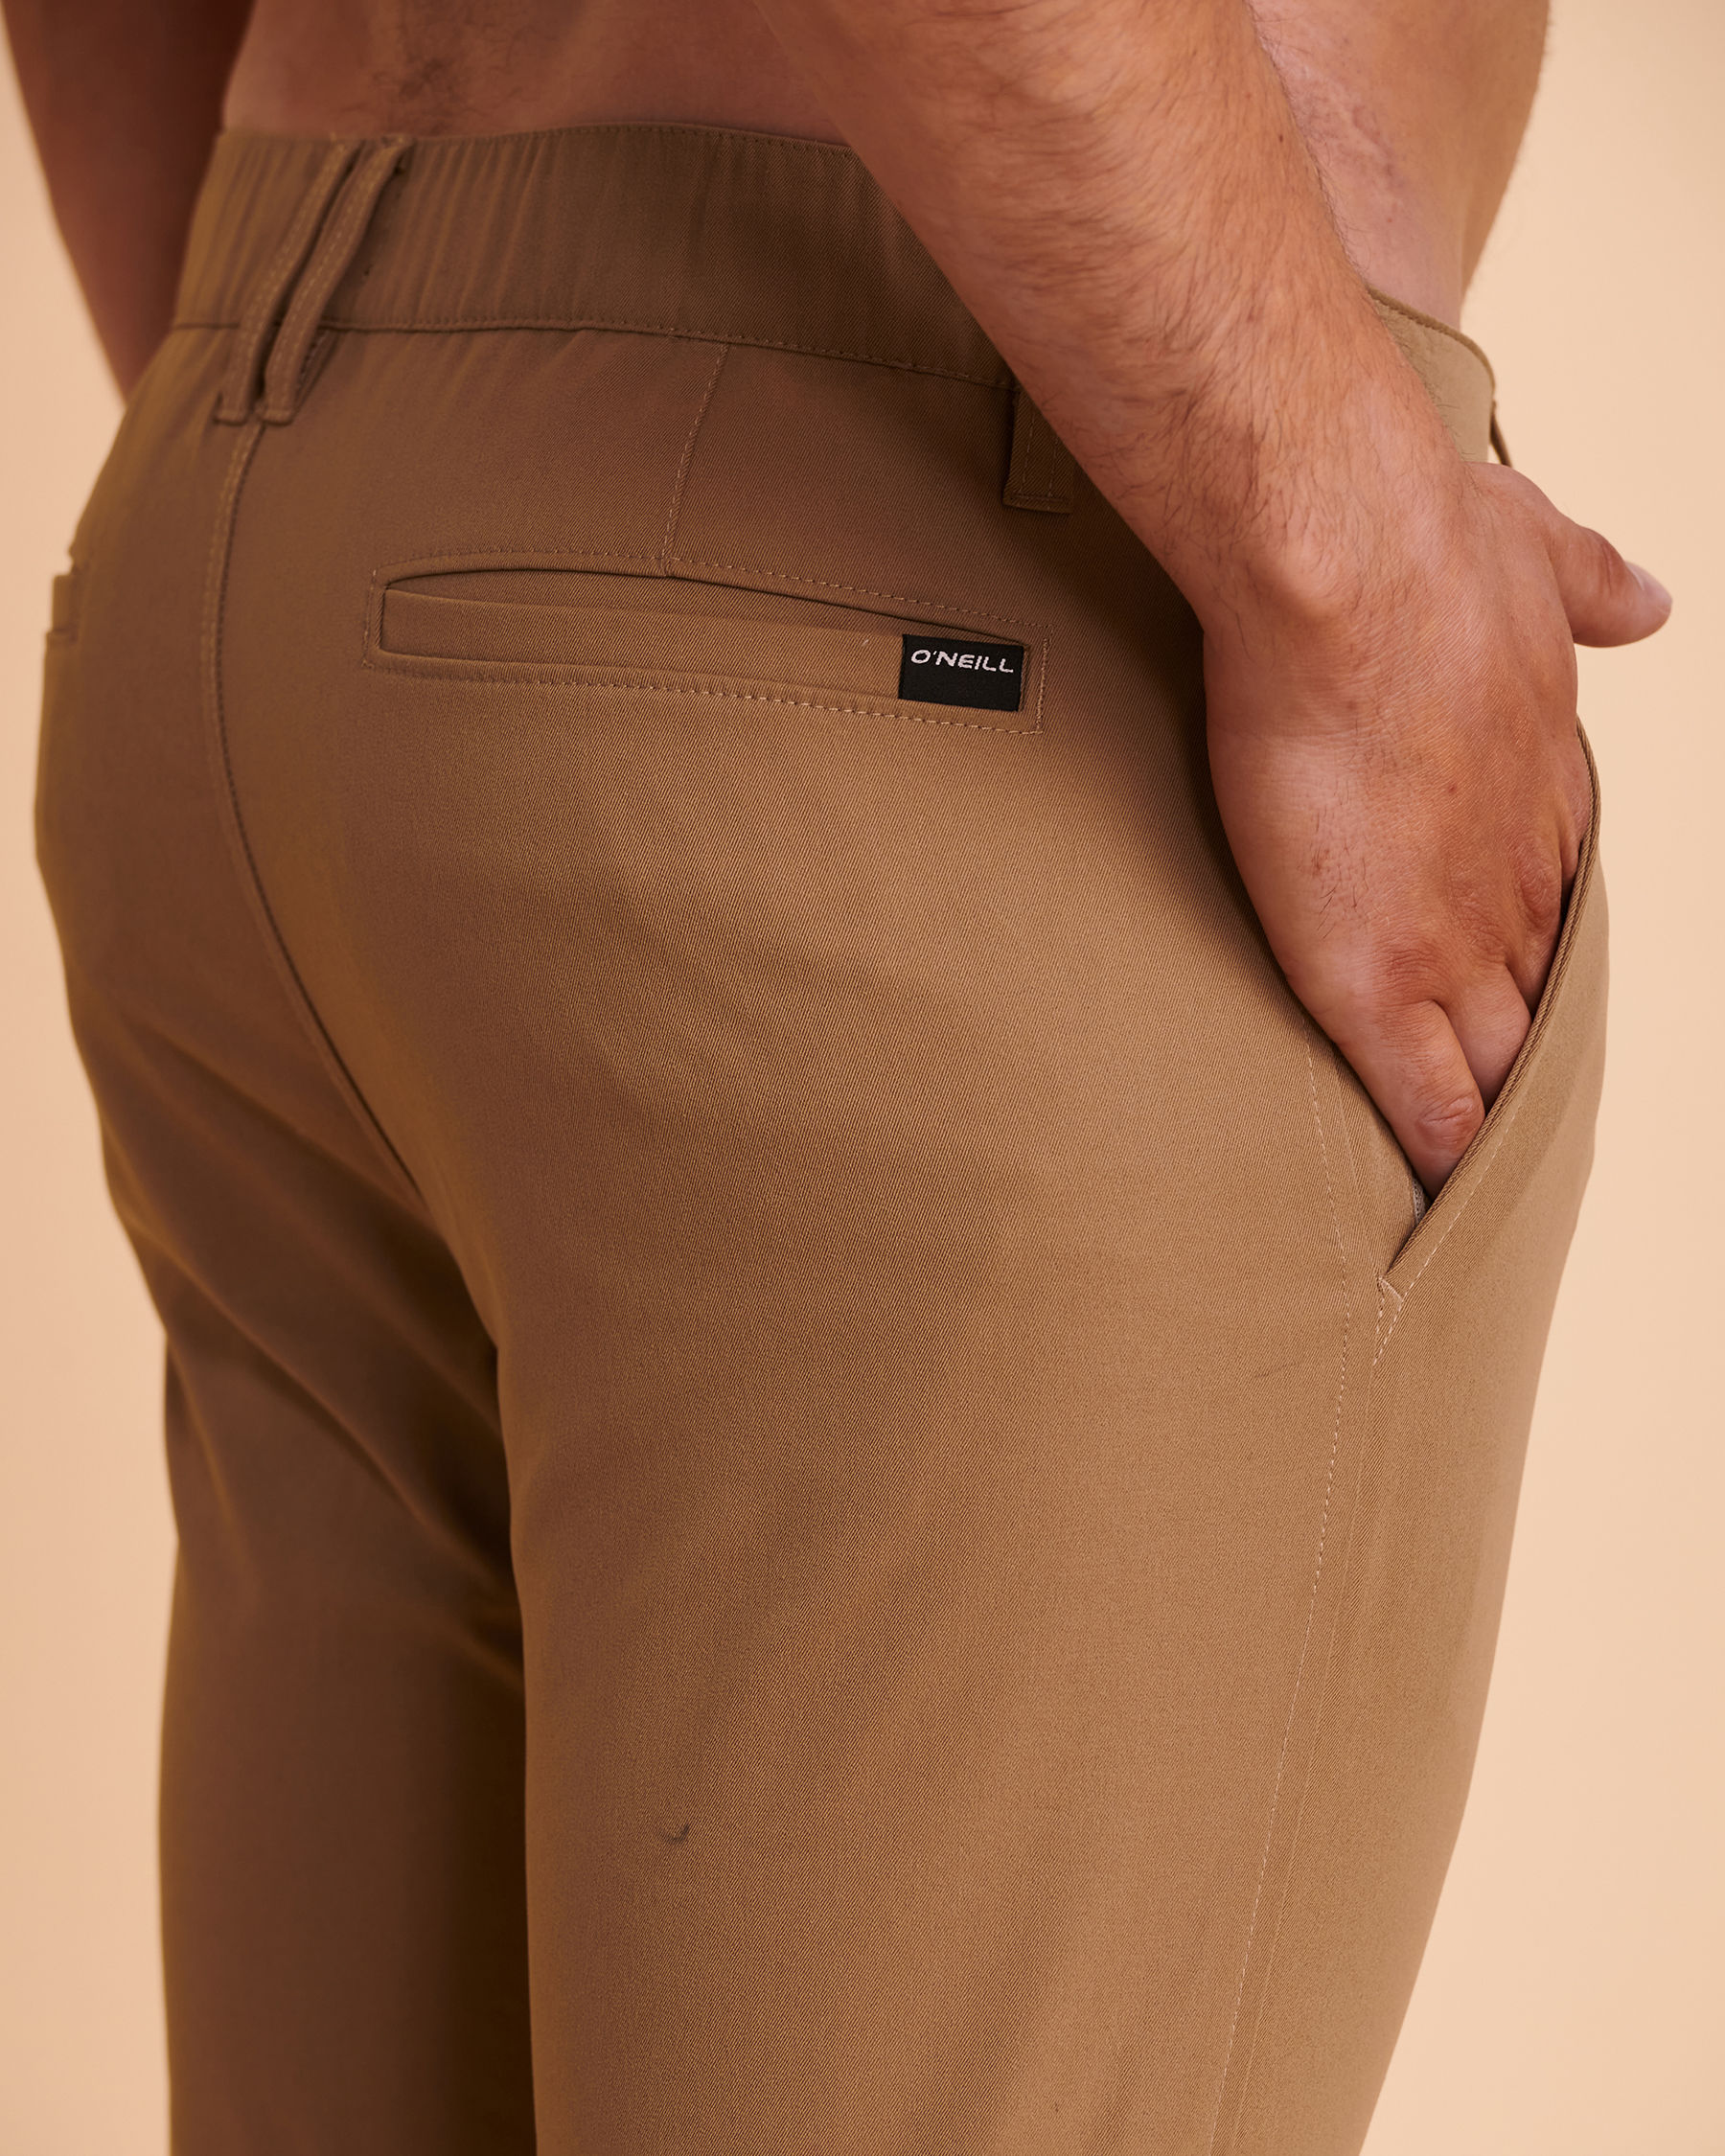 O'NEILL DONNIE Hybrid Pants Camel SP1109101C - View3